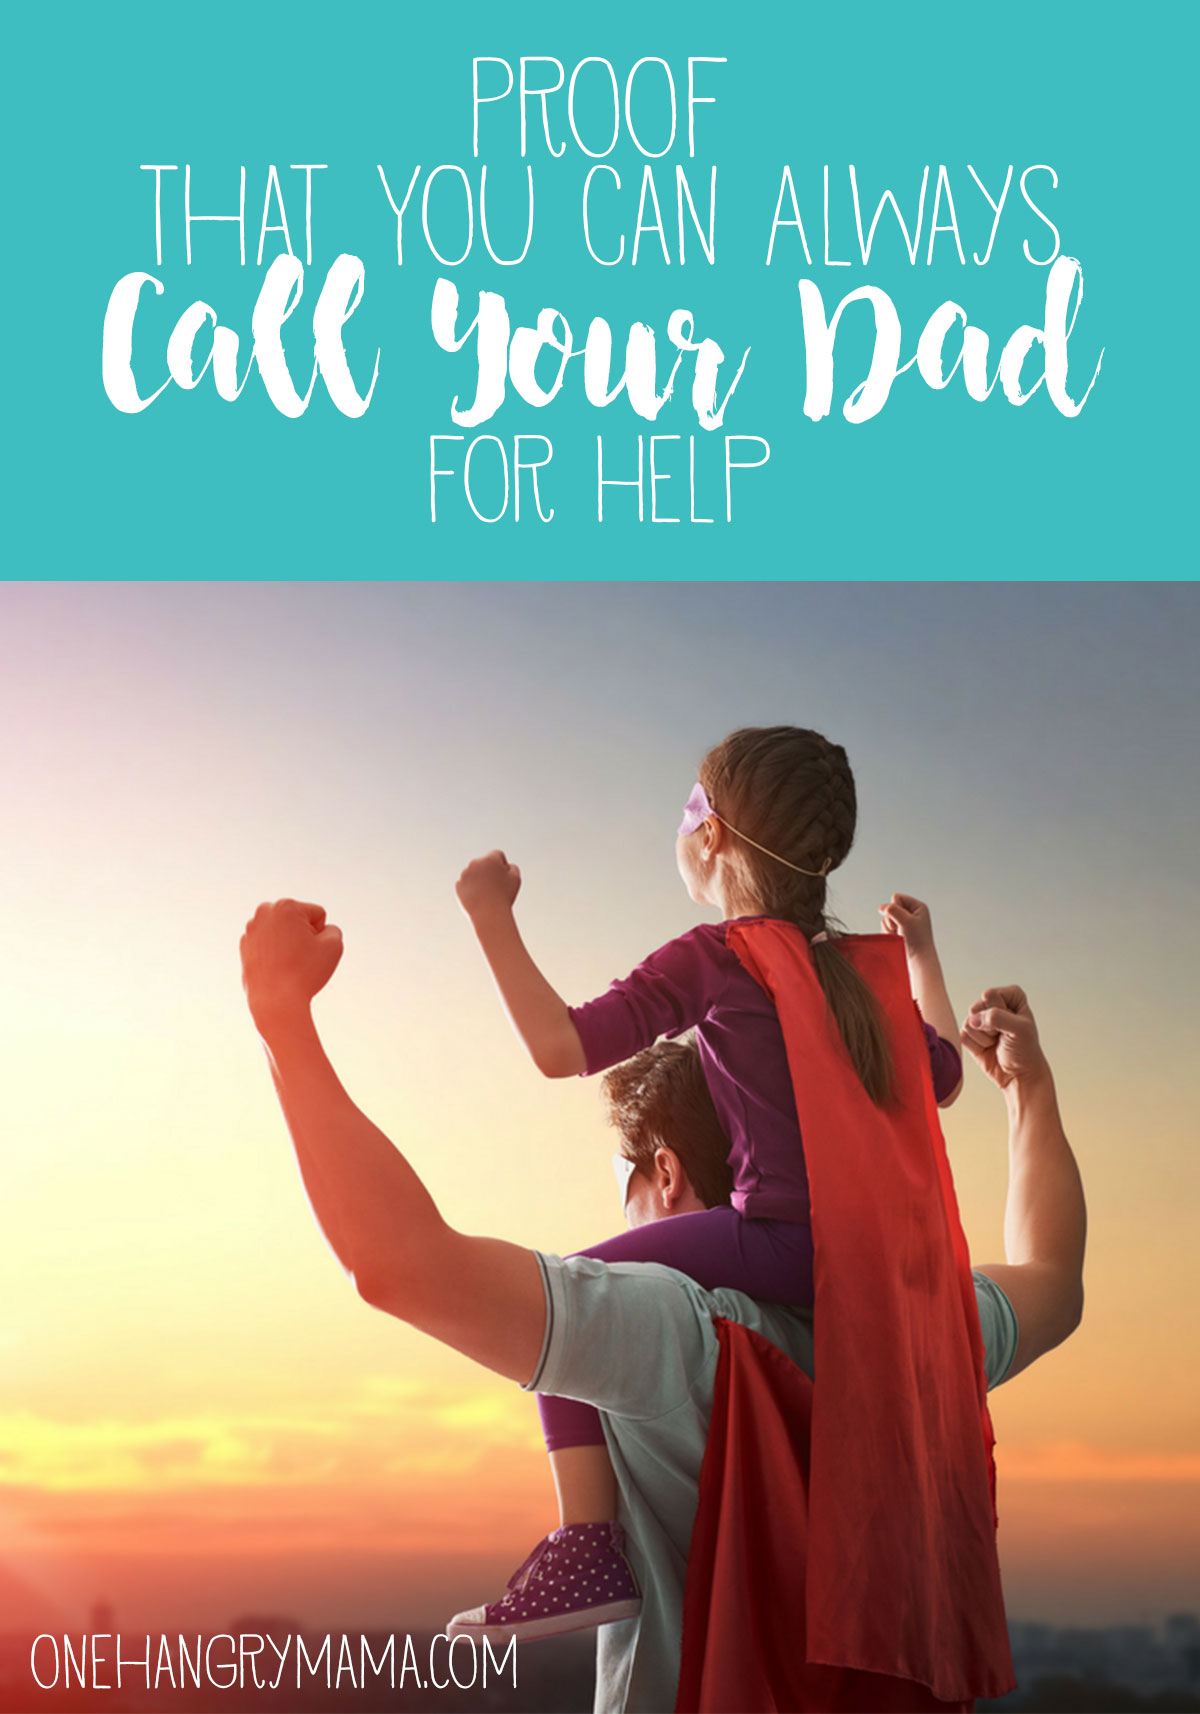 Dads are awesome. You can ALWAYS call your dad for help, no matter how ridiculous the situation may (or may NOT) be, and he'll come running to save the day.